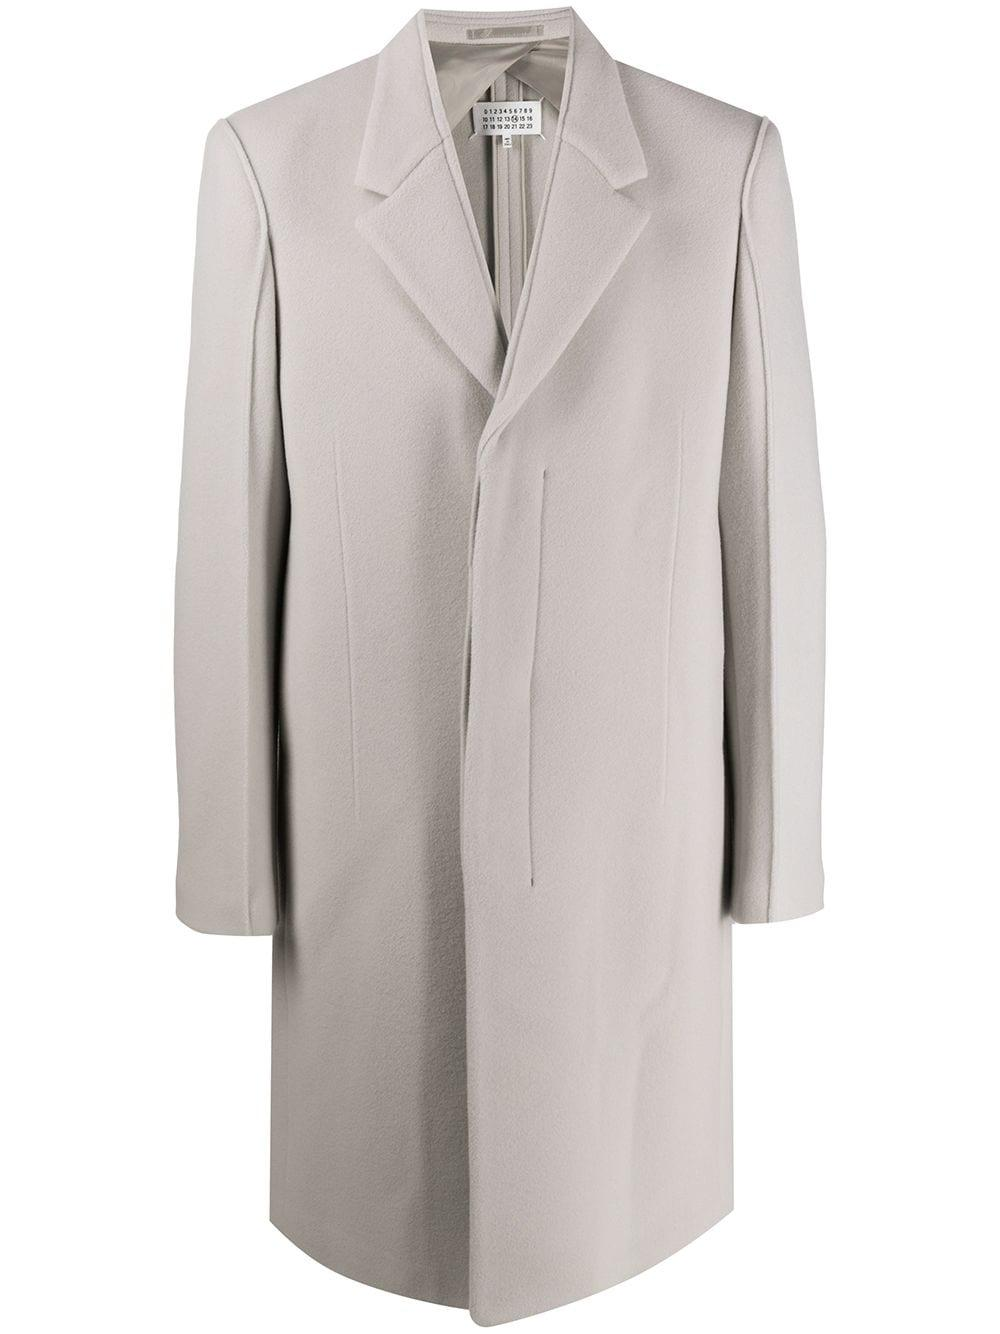 Maison Margiela light grey coat